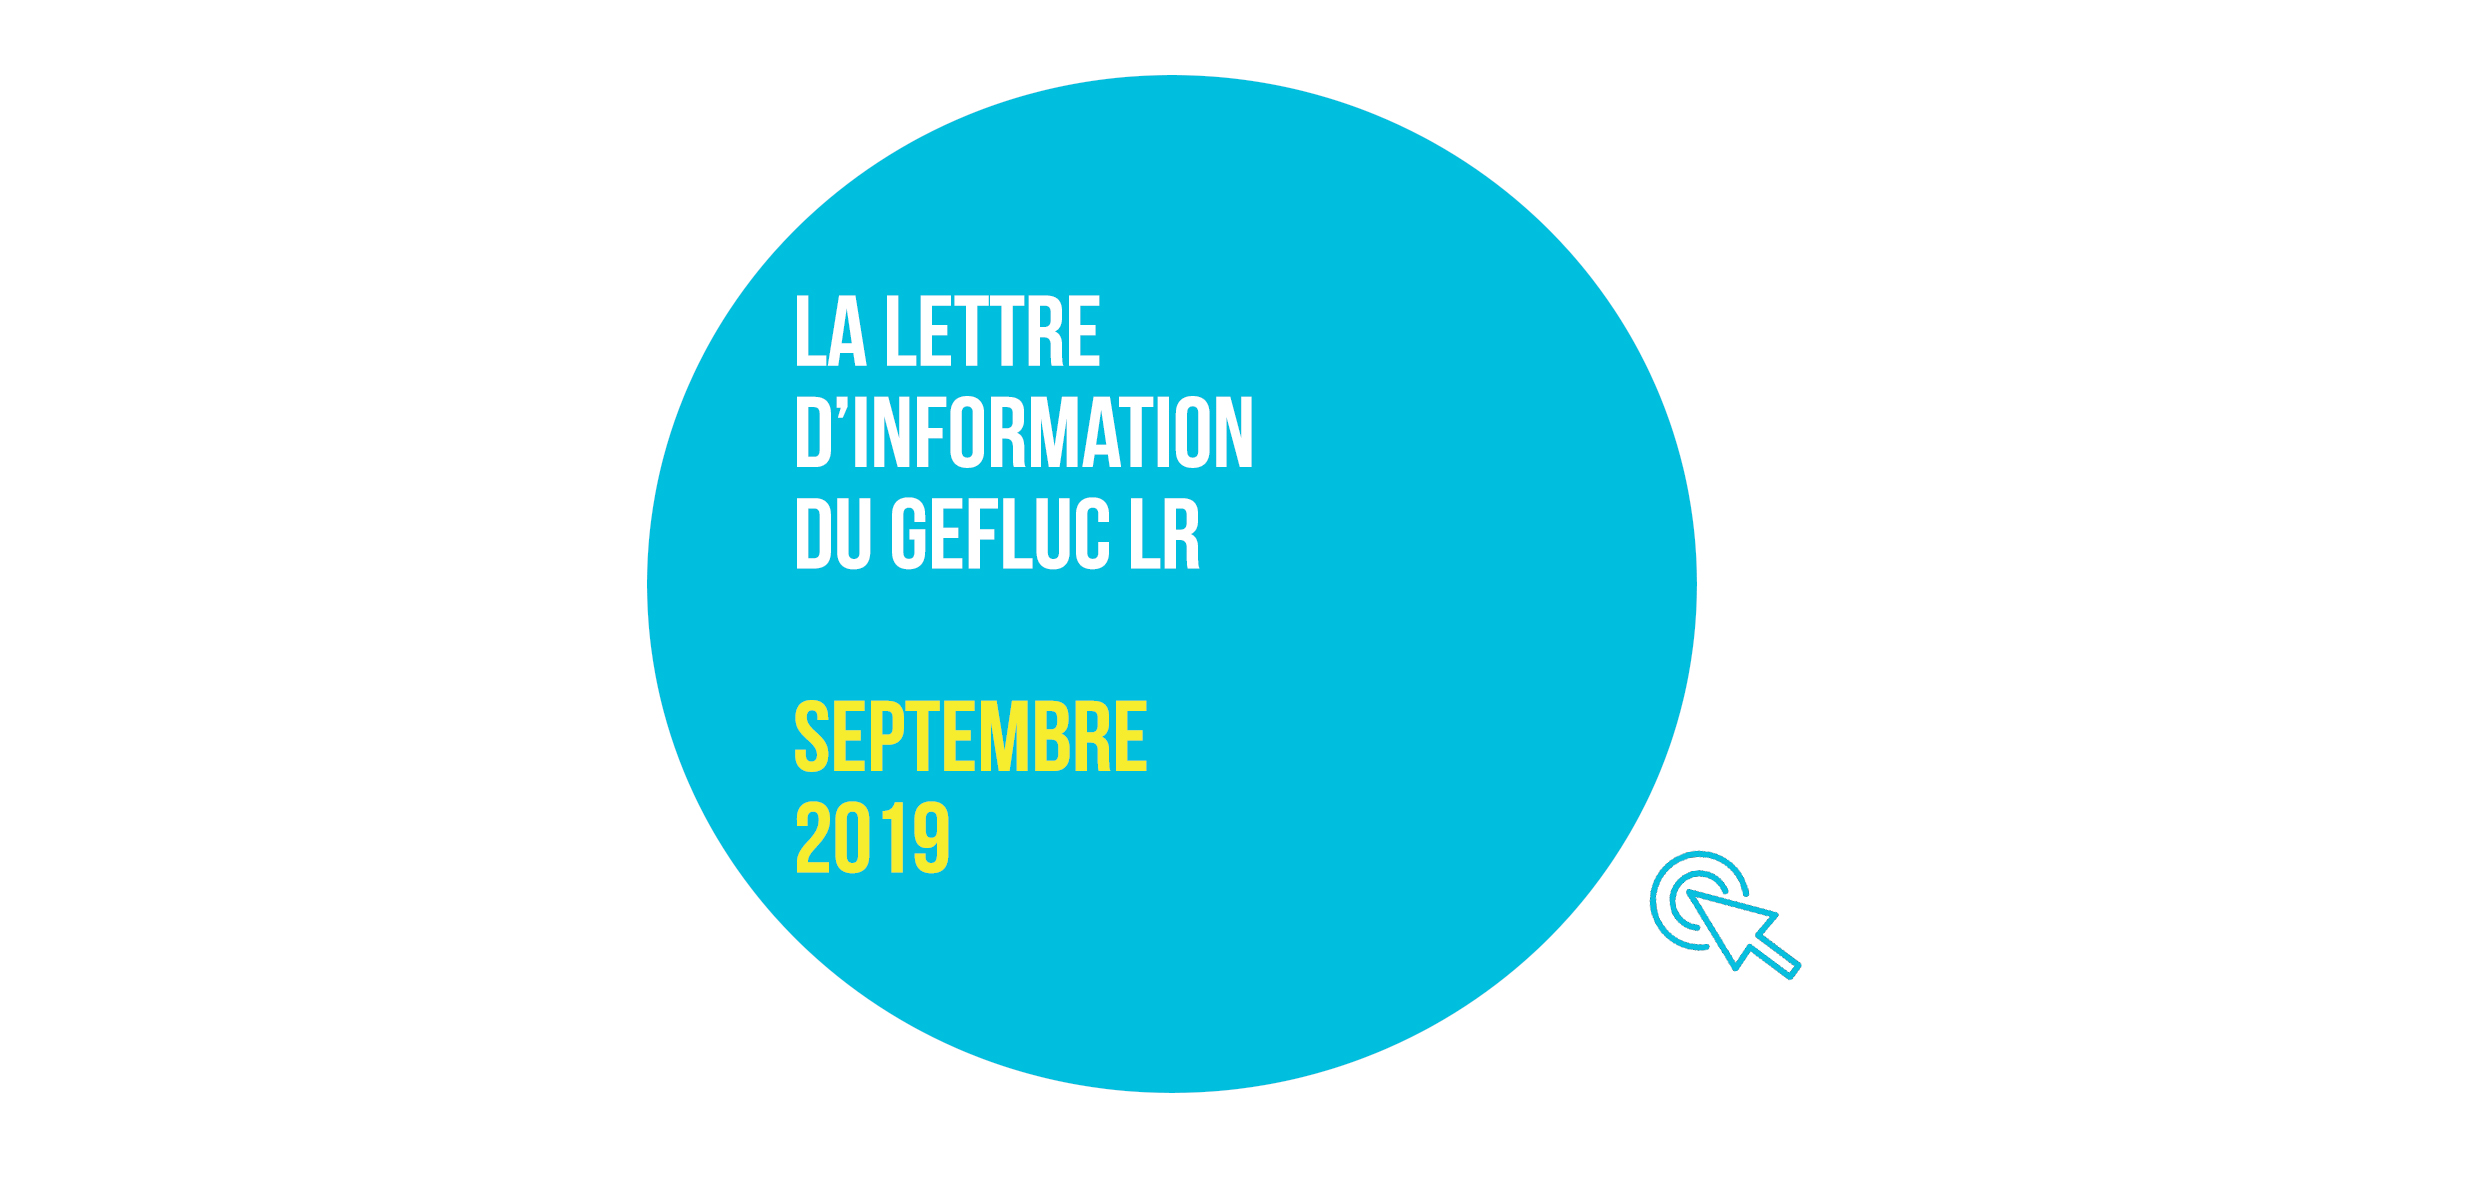 newsletter-2019-gefluc-lr